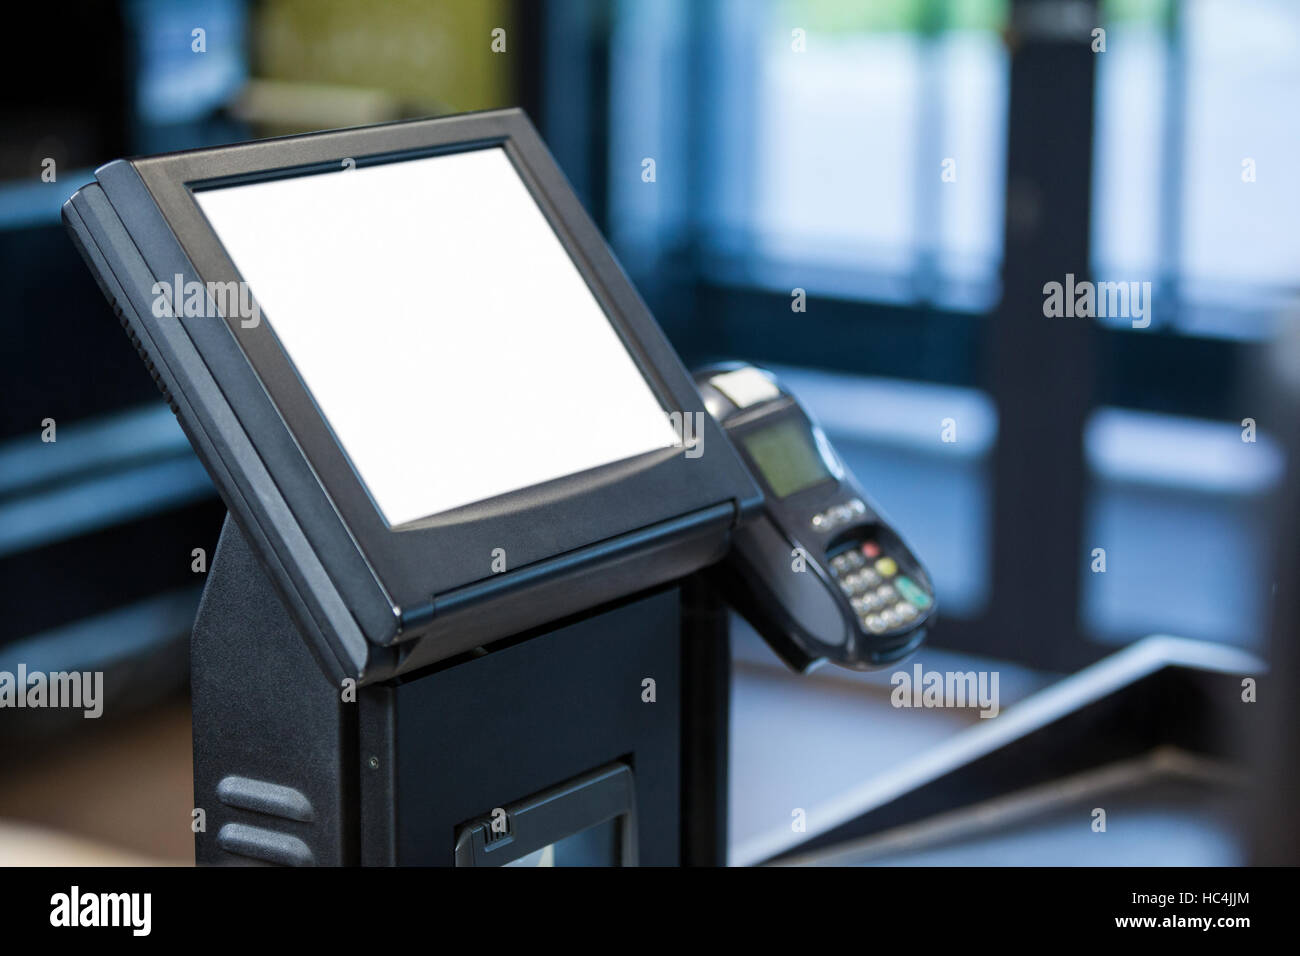 Billing machine and credit card terminal at cash counter - Stock Image